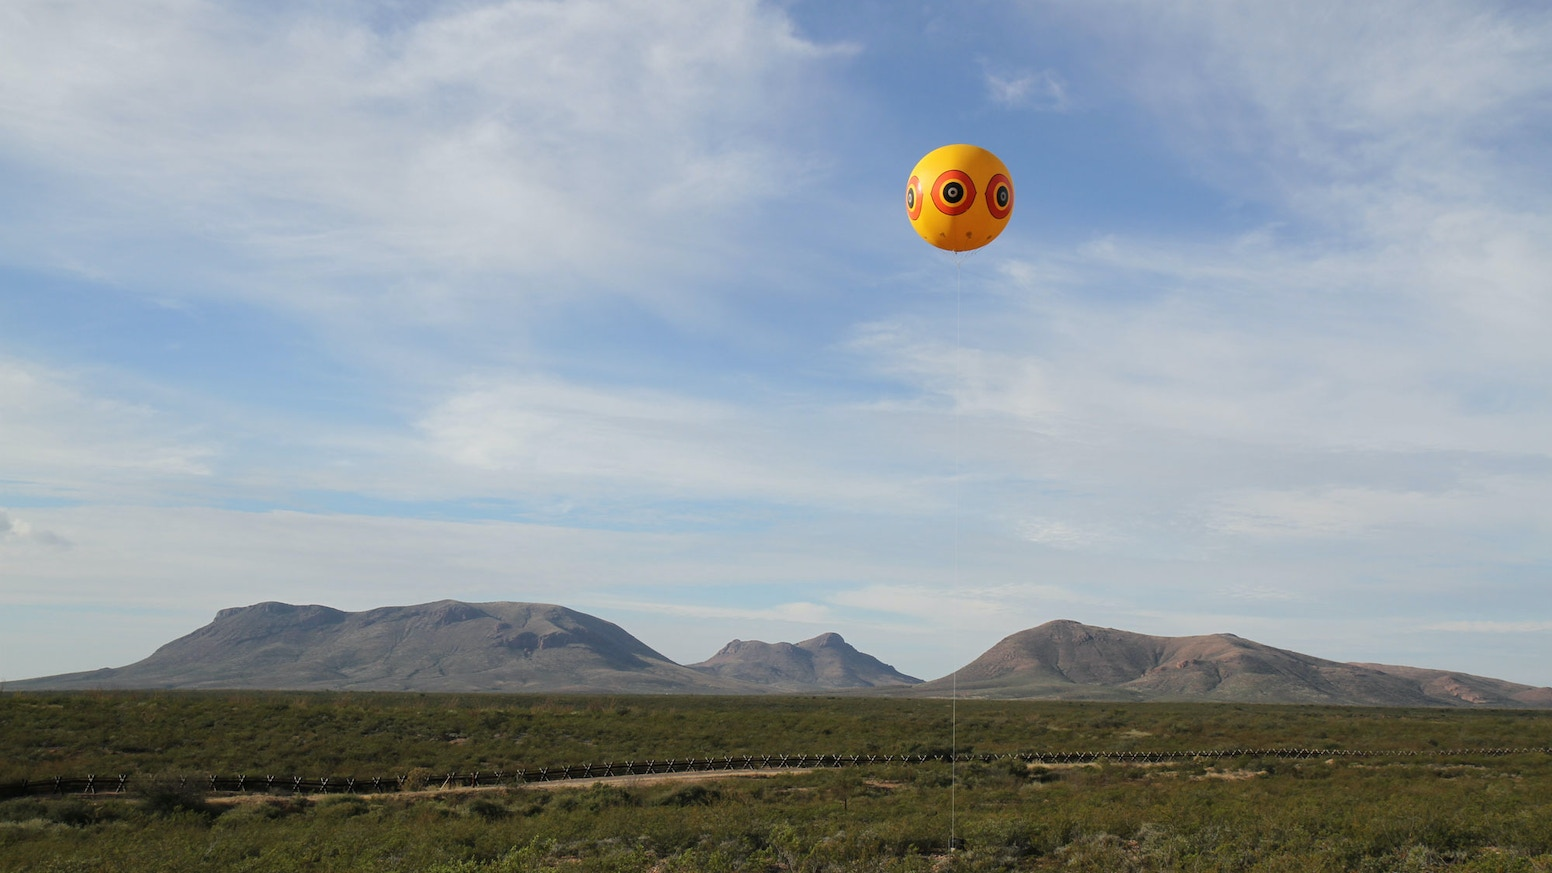 Postcommodity presents a temporary 2-mile long land art installation intersecting the US/Mexico border, Oct. 9-12, 2015.